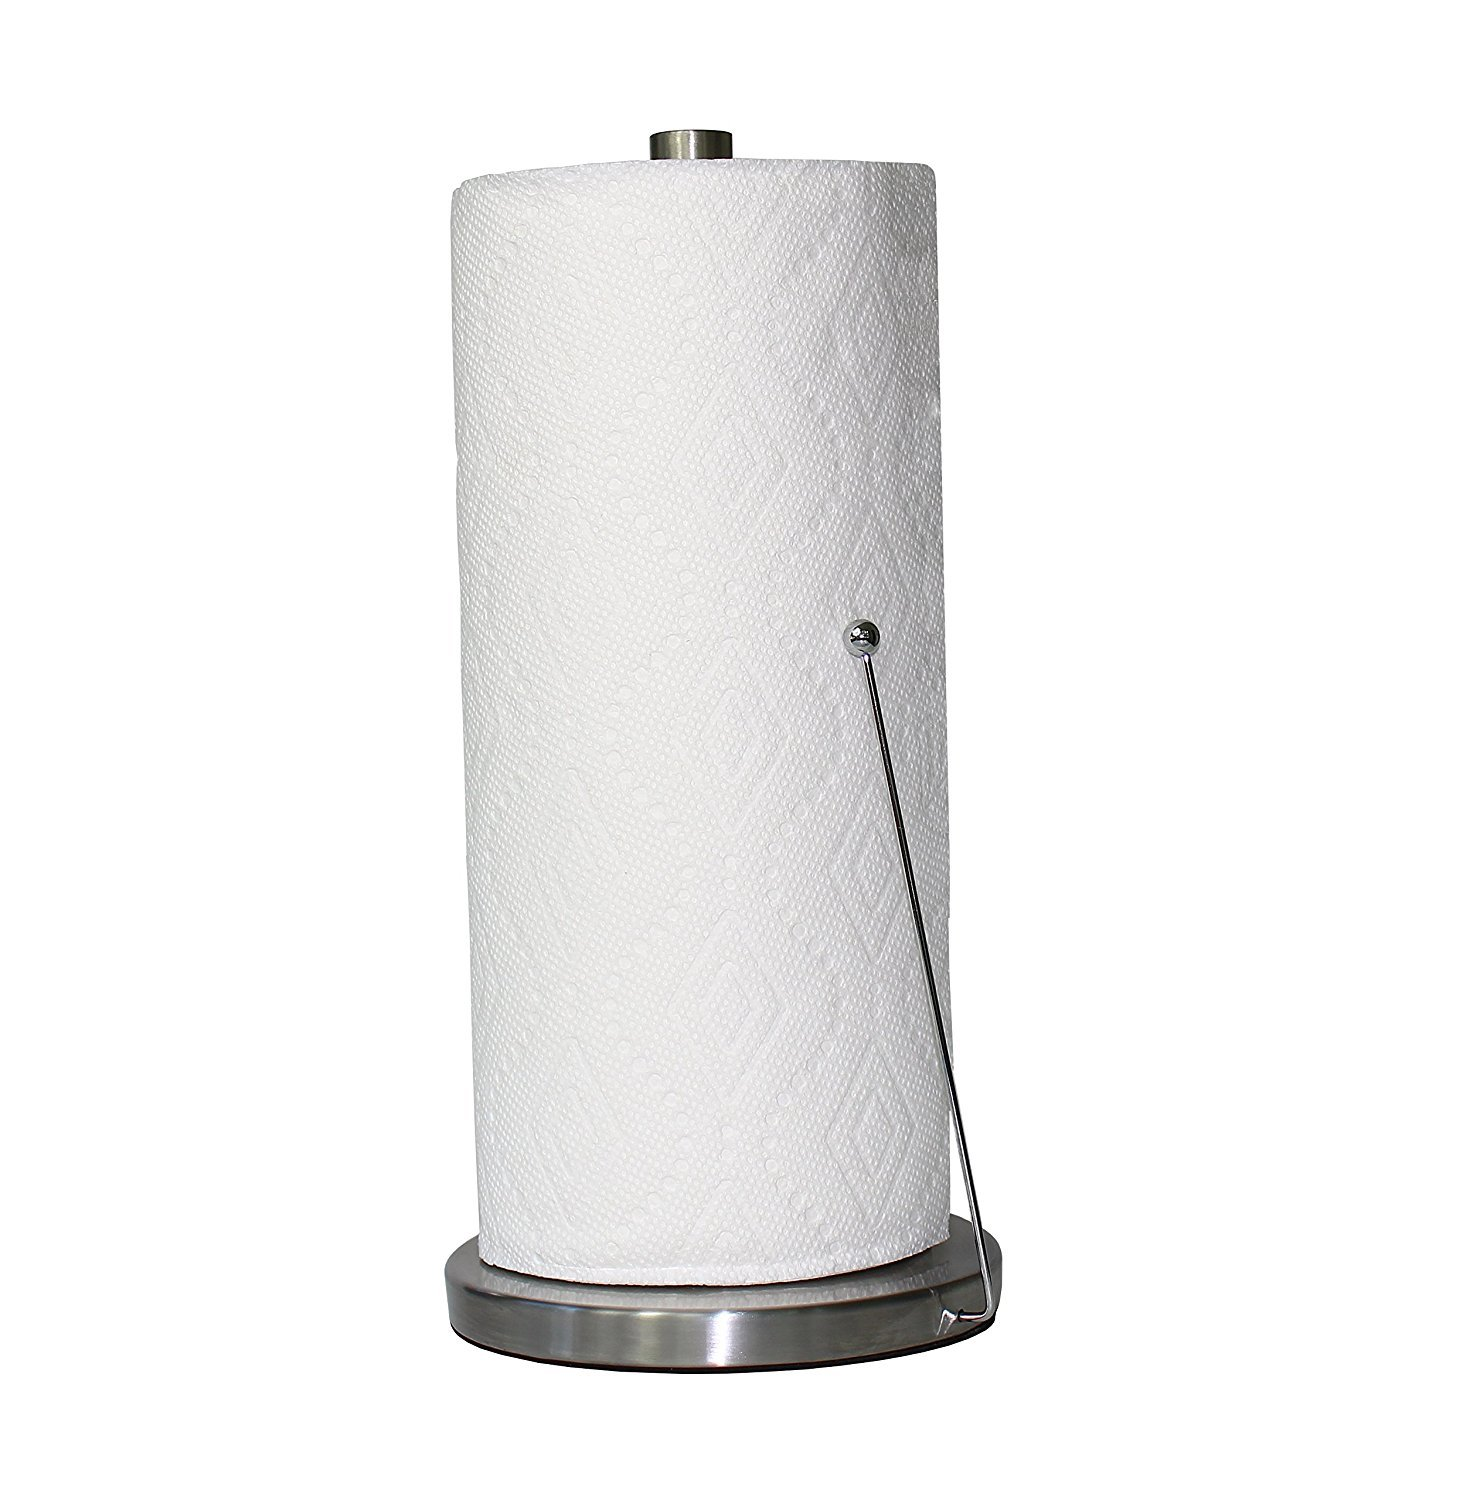 Stainless Steel Kitchen Paper Towel Holder AiMiWa